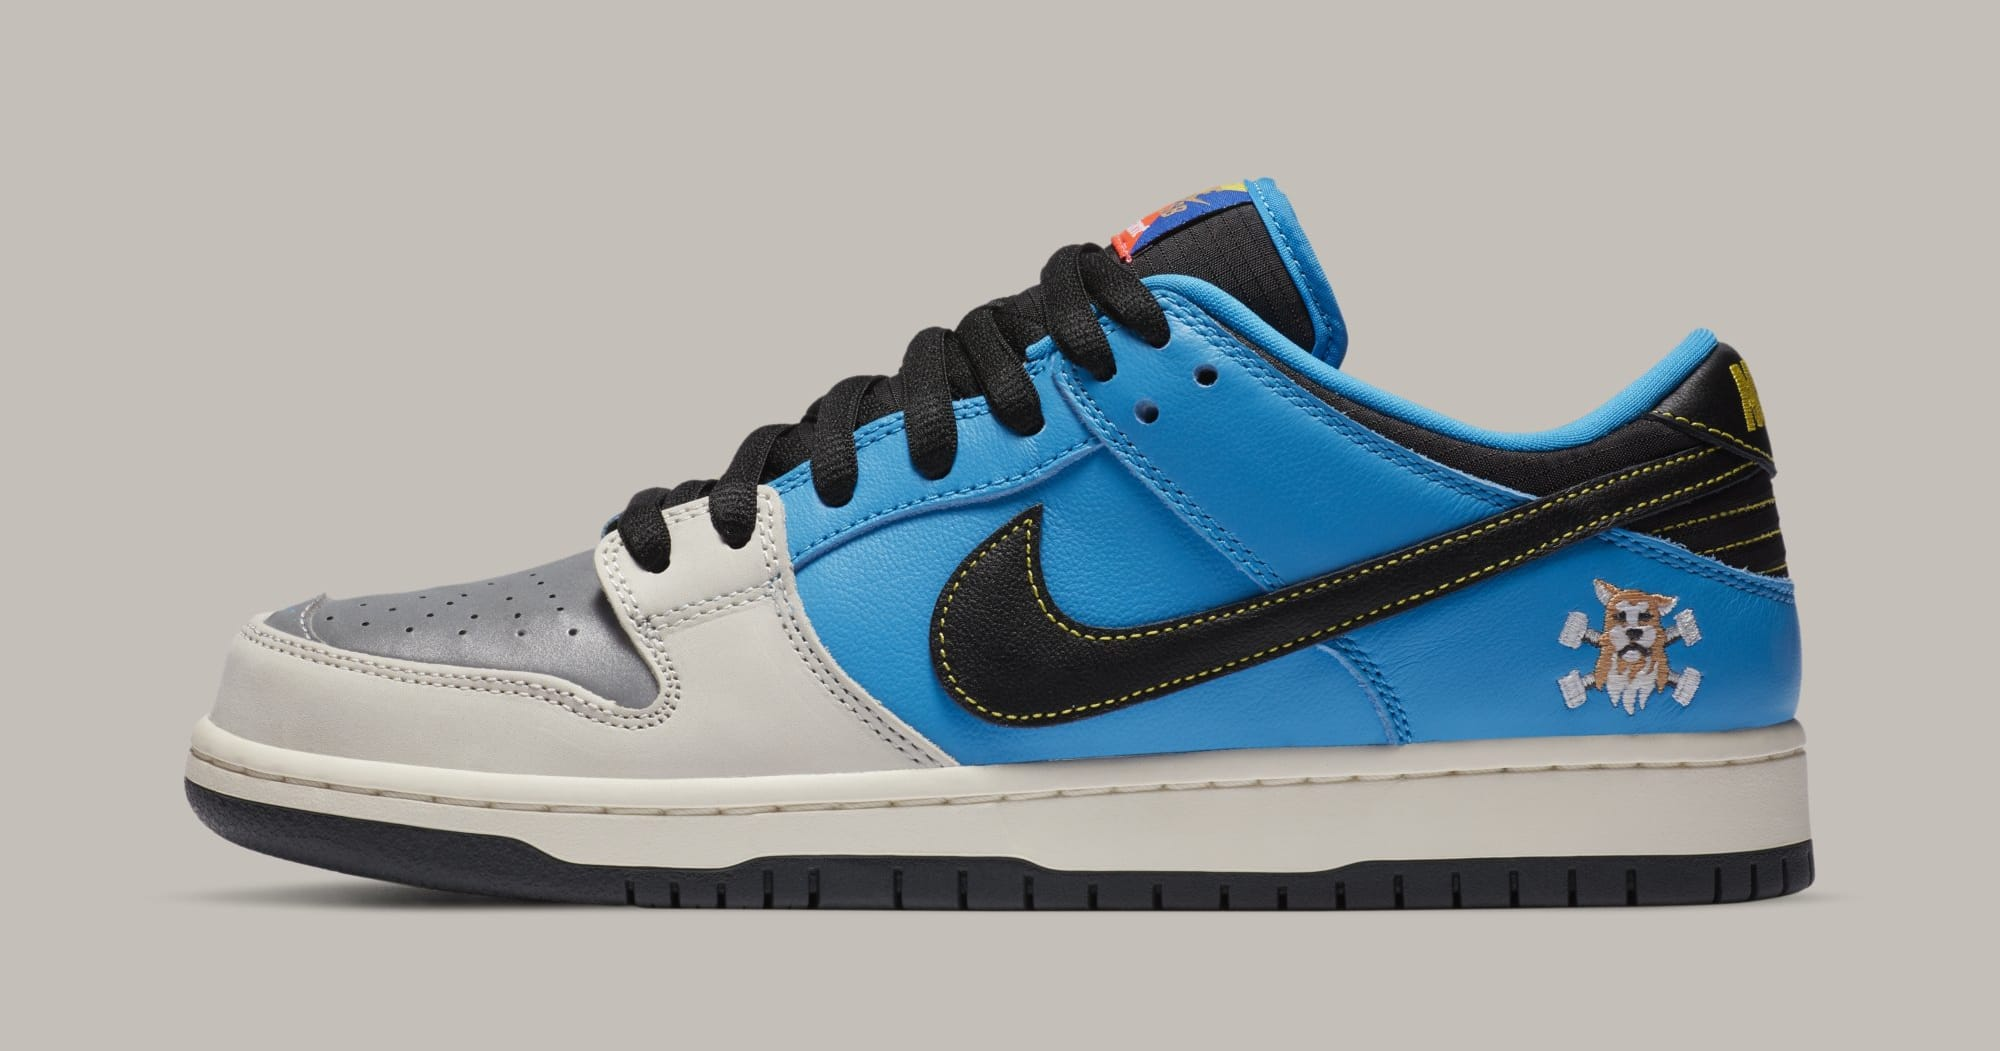 Instant Skateboards x Nike SB Dunk Low CZ5128-400 Lateral